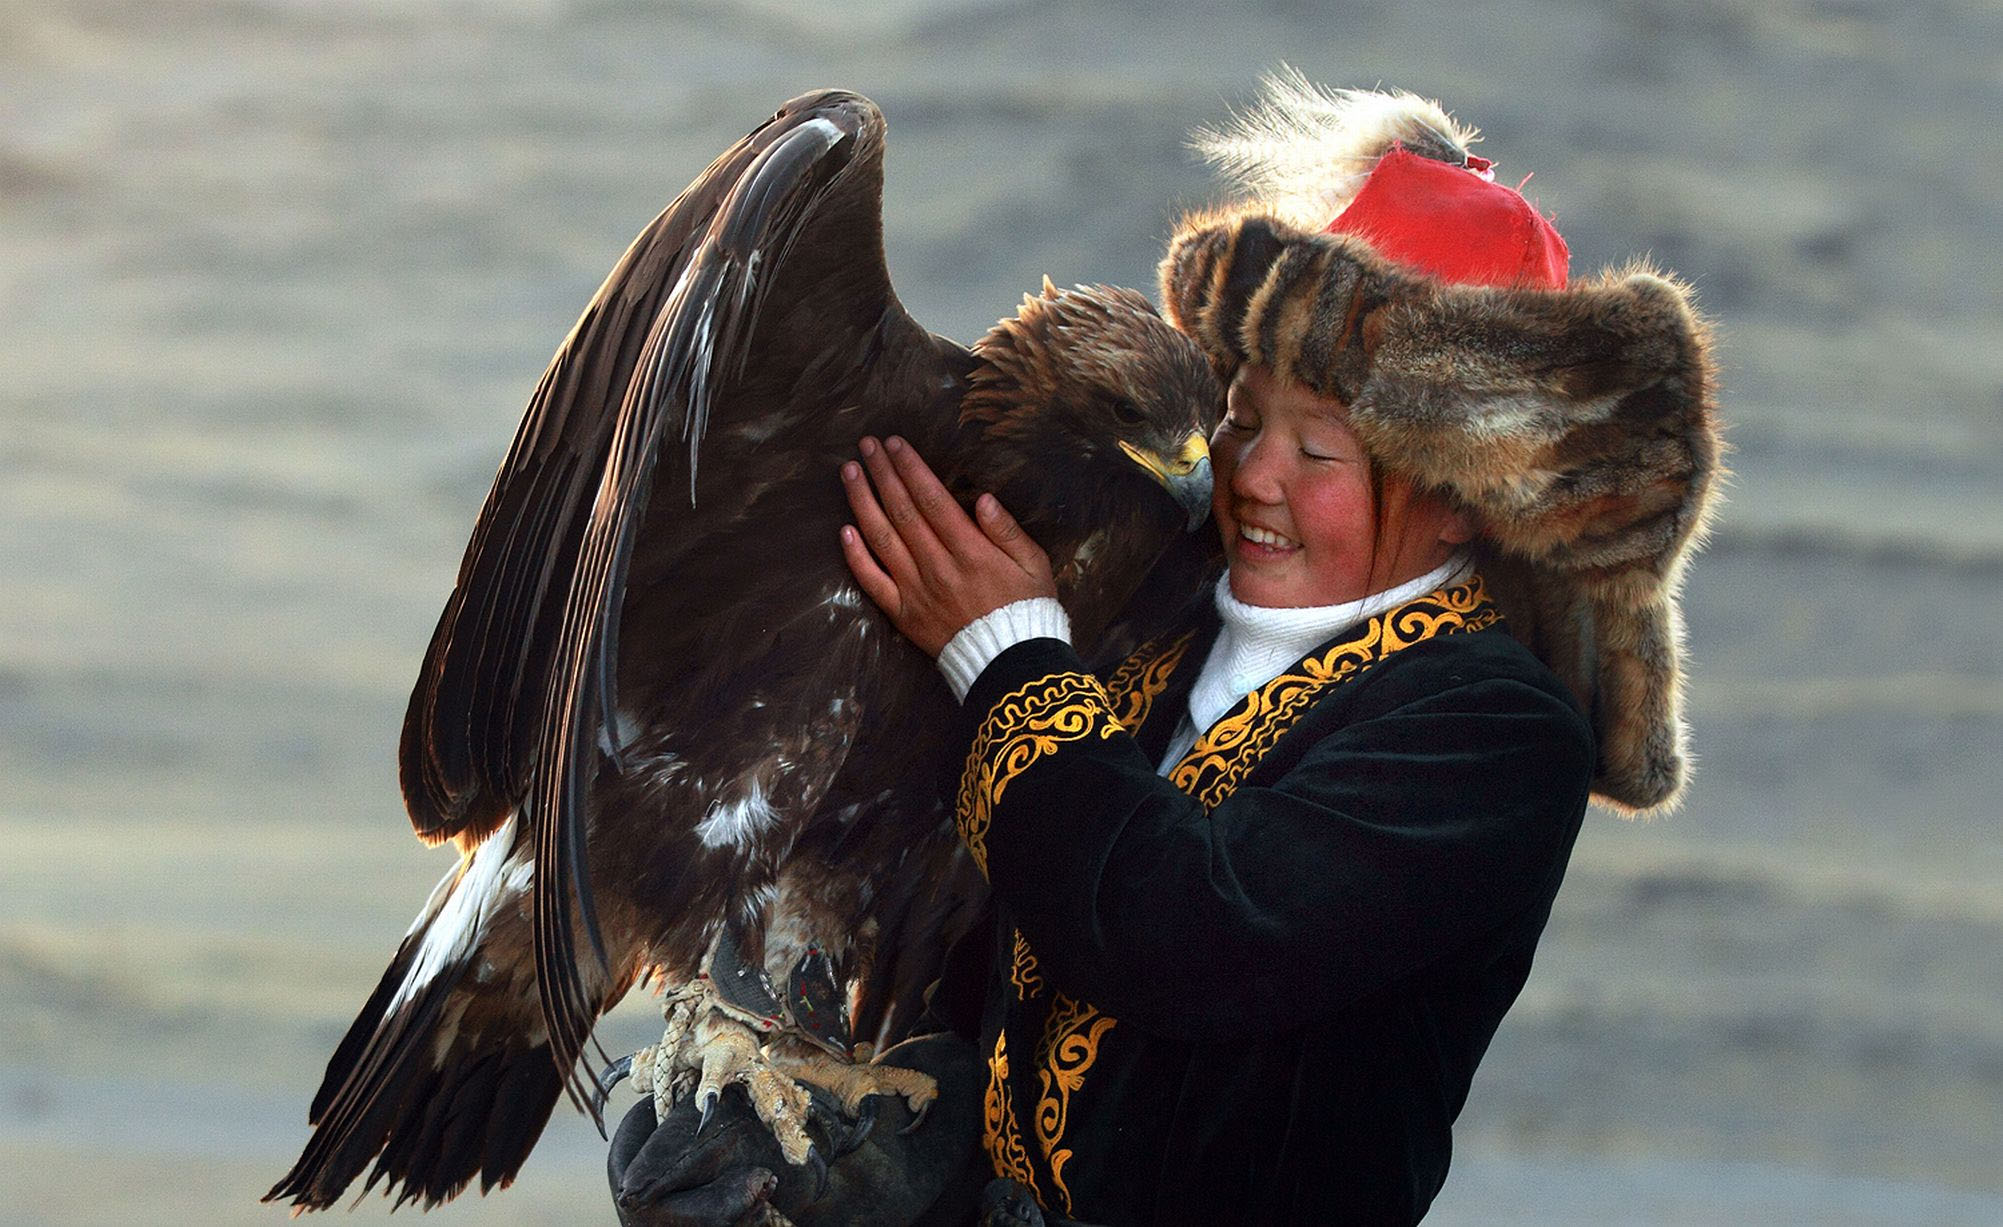 Scorpio Golden Eagle Mongolian 13 year old Ashol Pan, Photographer Svidensky